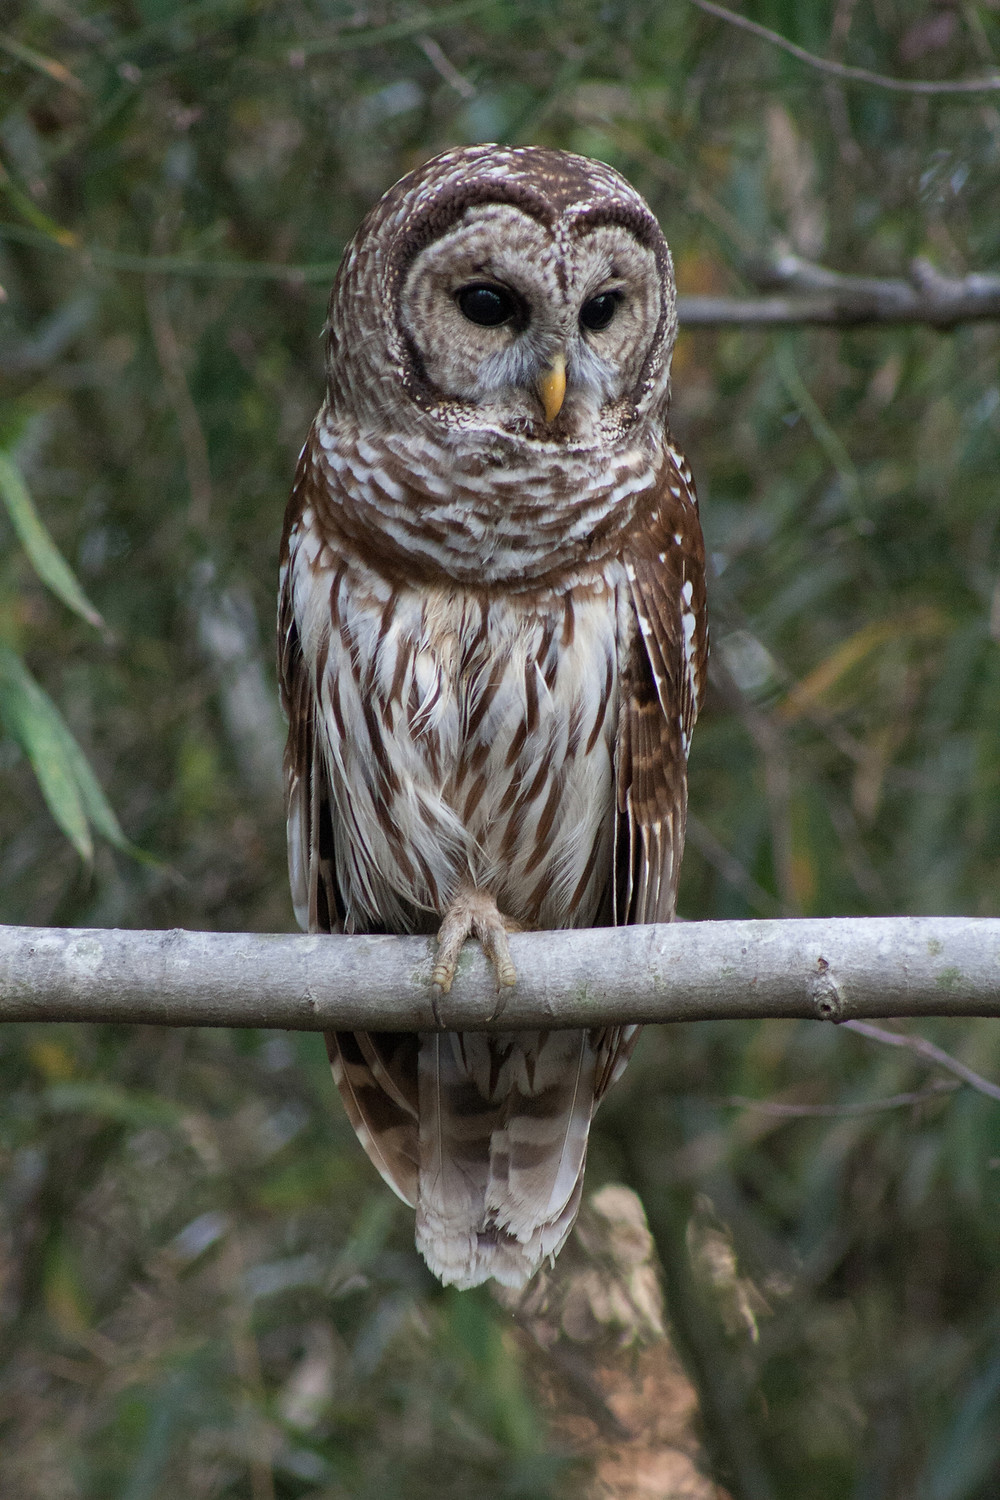 Barred Owl perched on tree branch.